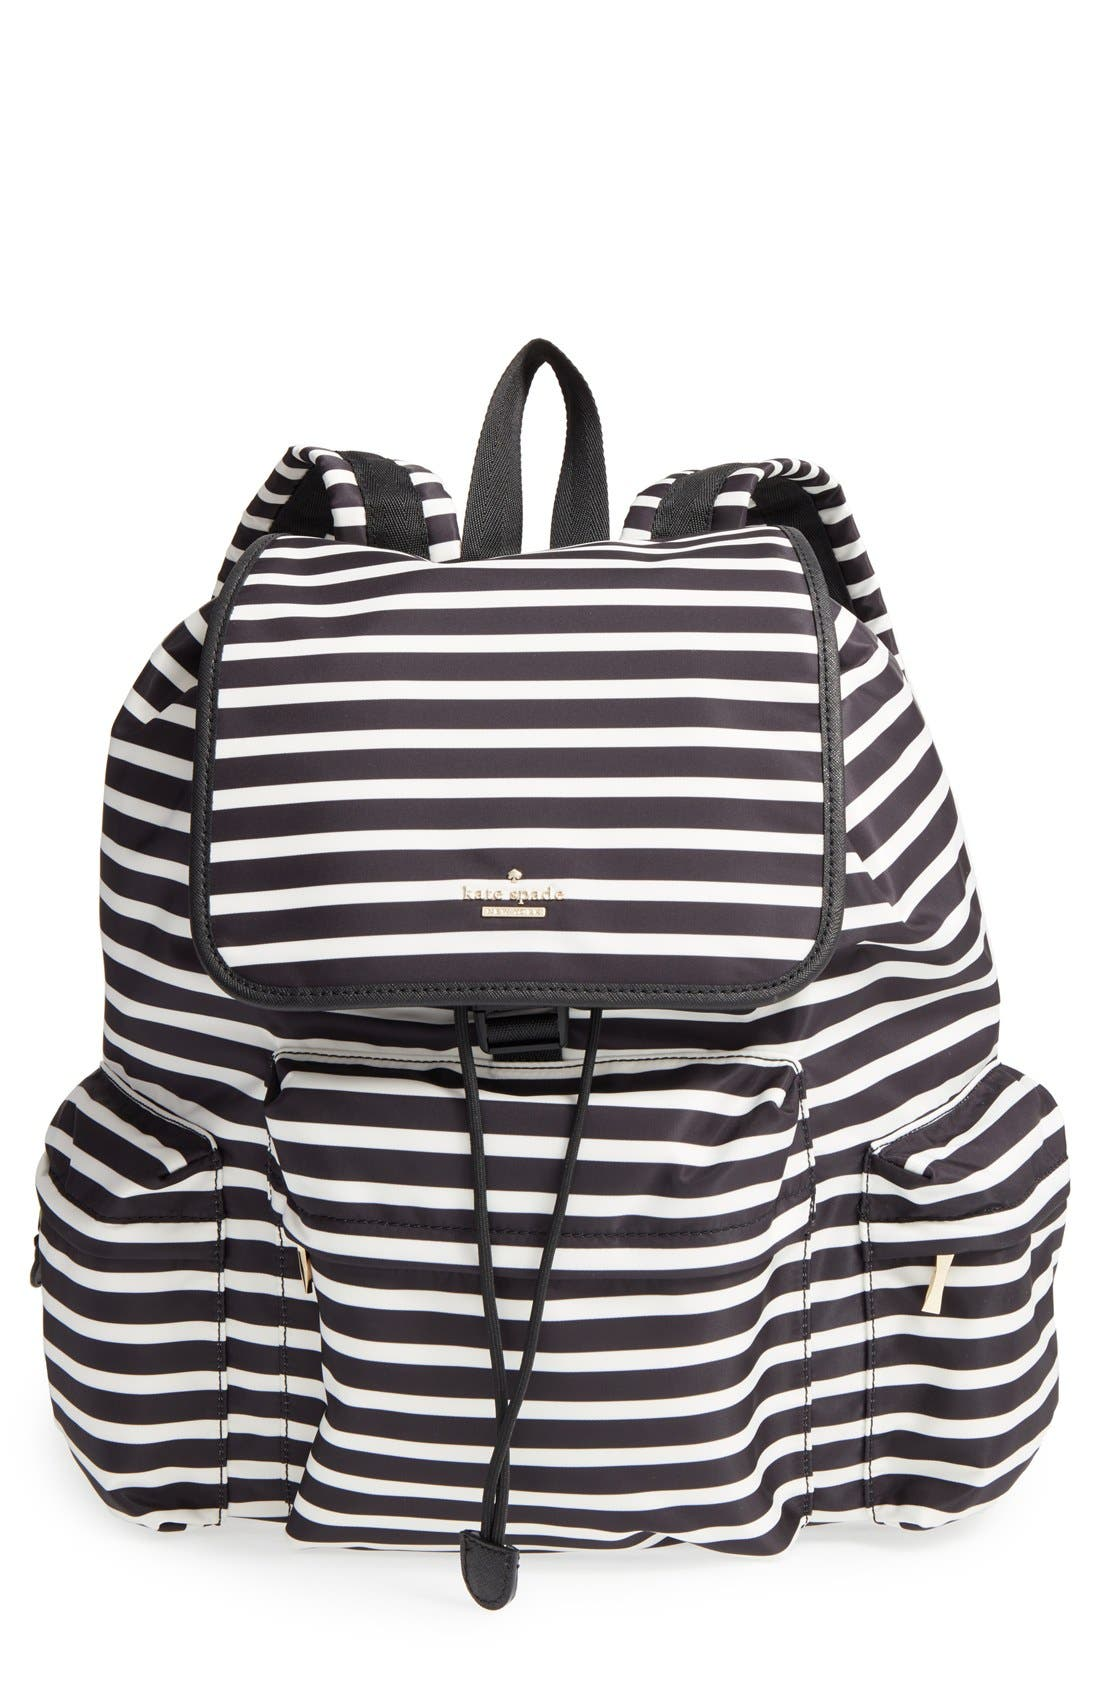 Main Image - kate spade new york 'classic - clay' nylon backpack